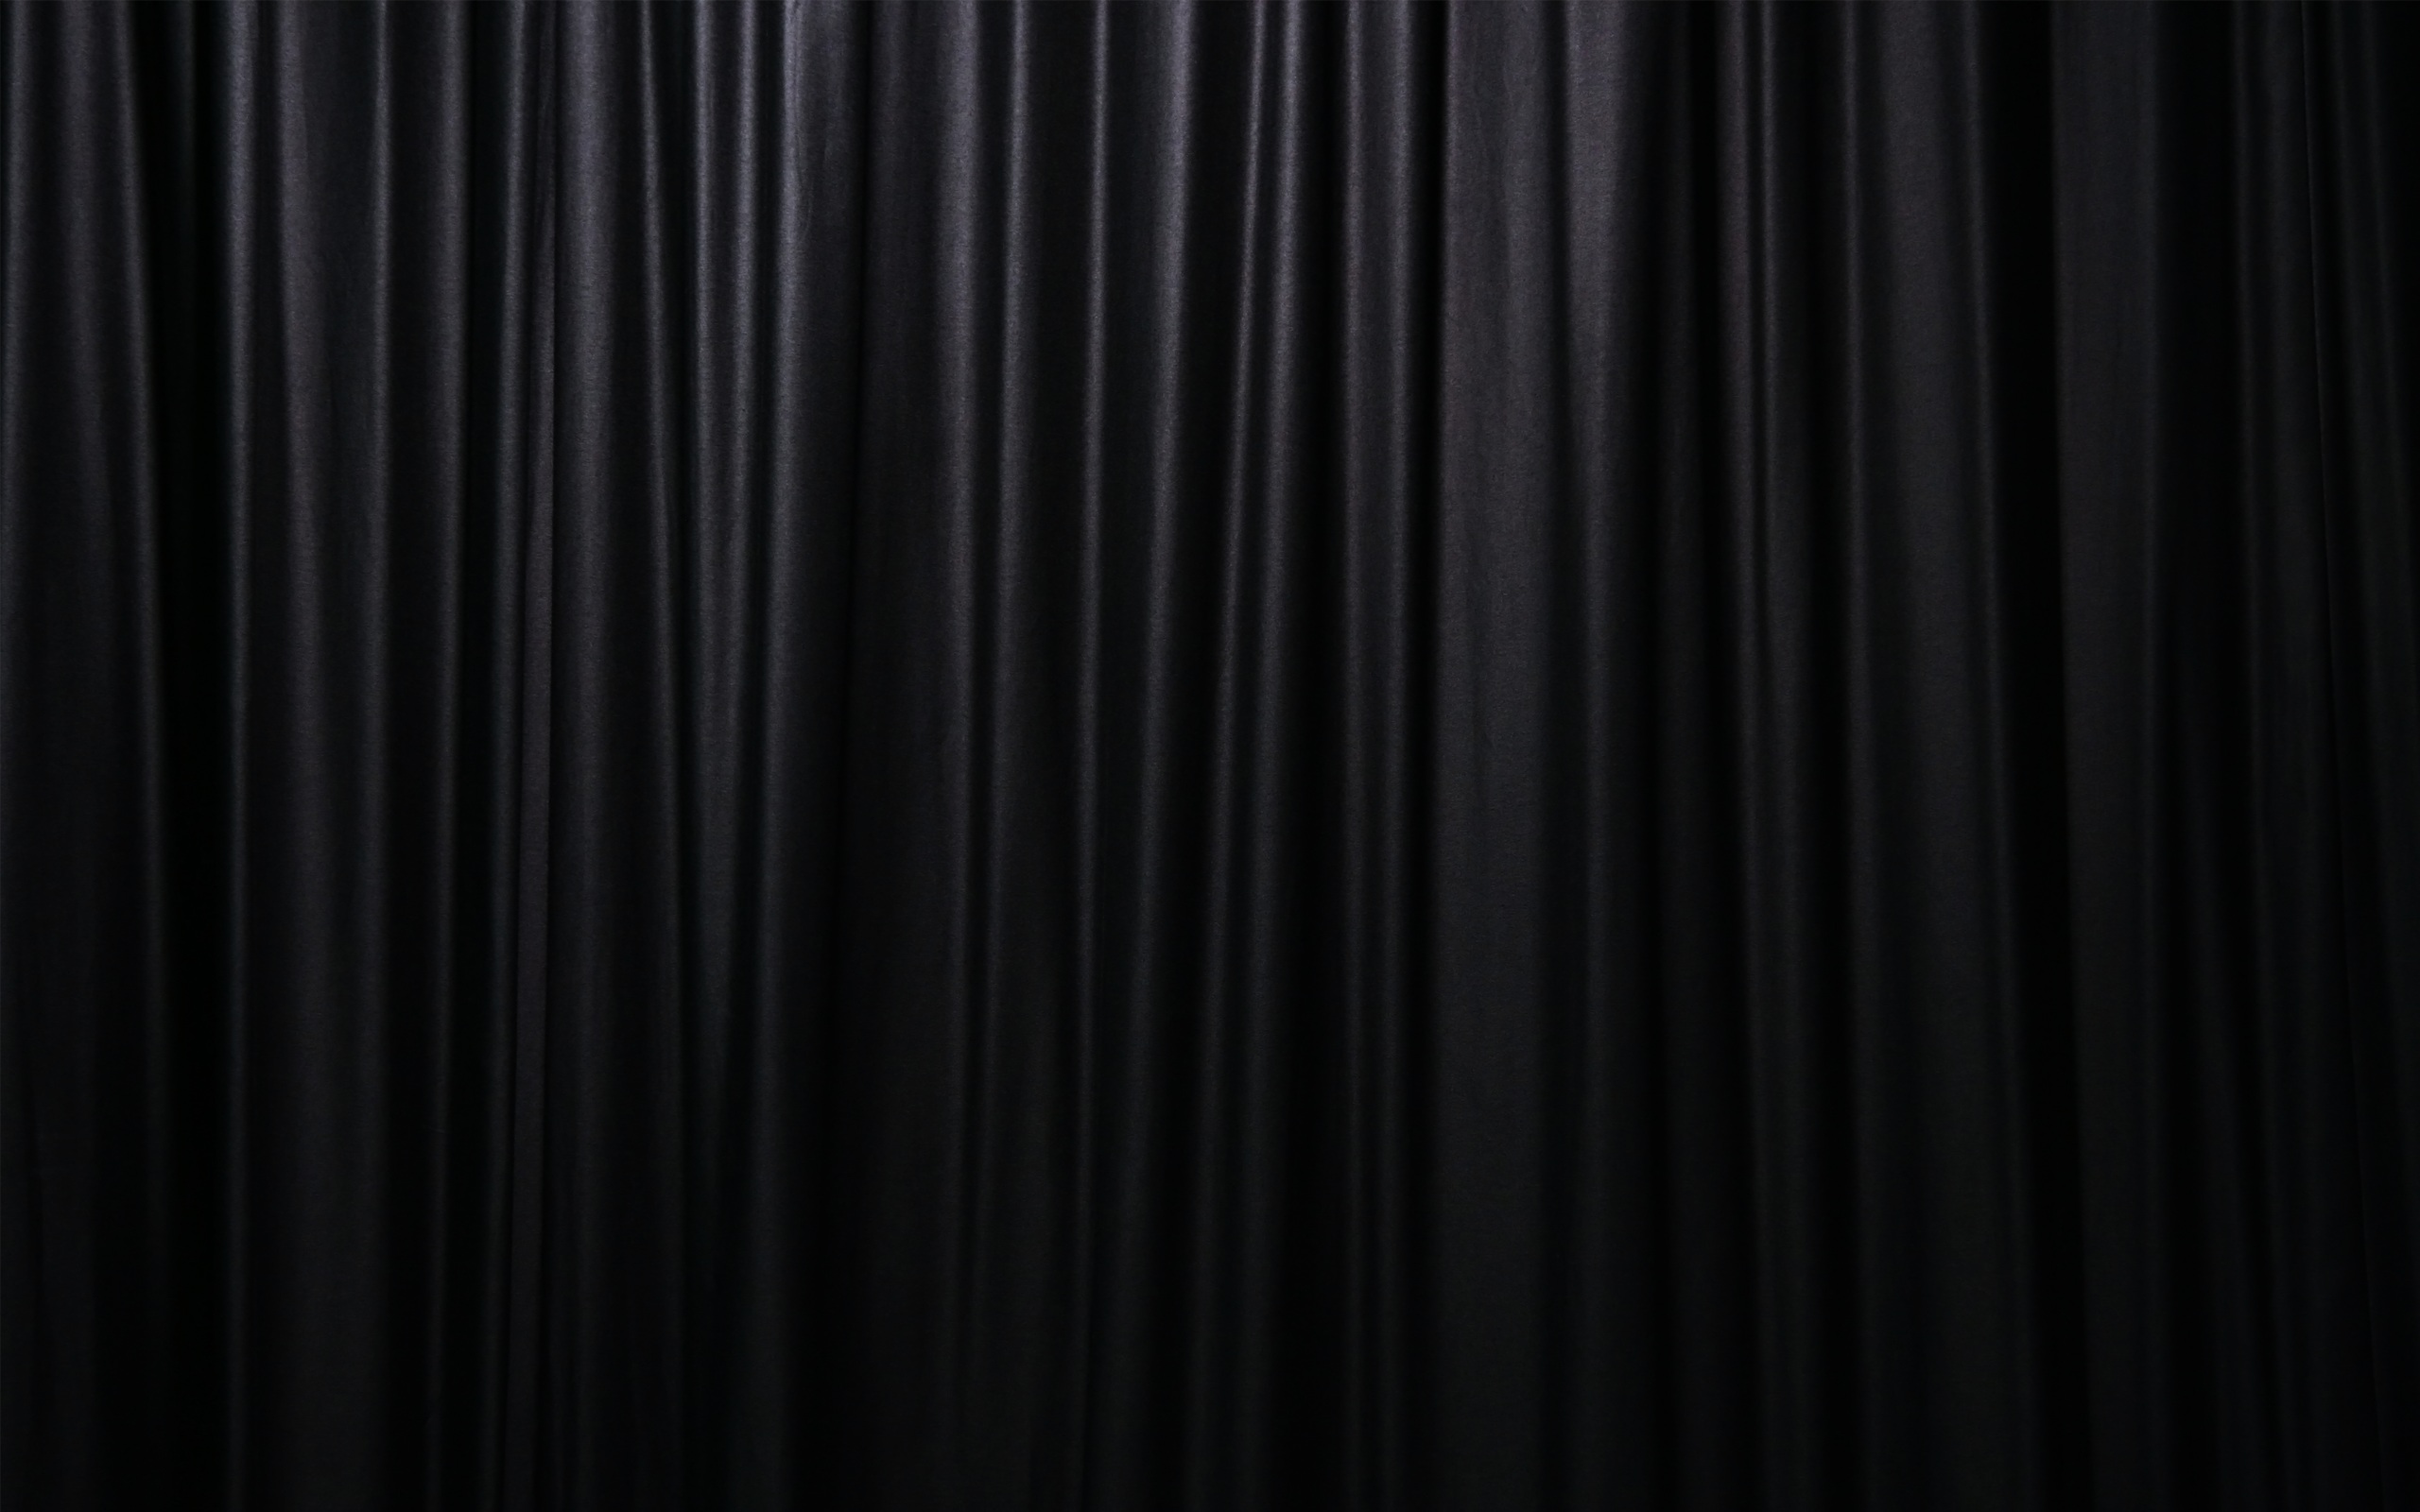 Schwarzer Vorhang Curtain Blind Black Background Asacocirco